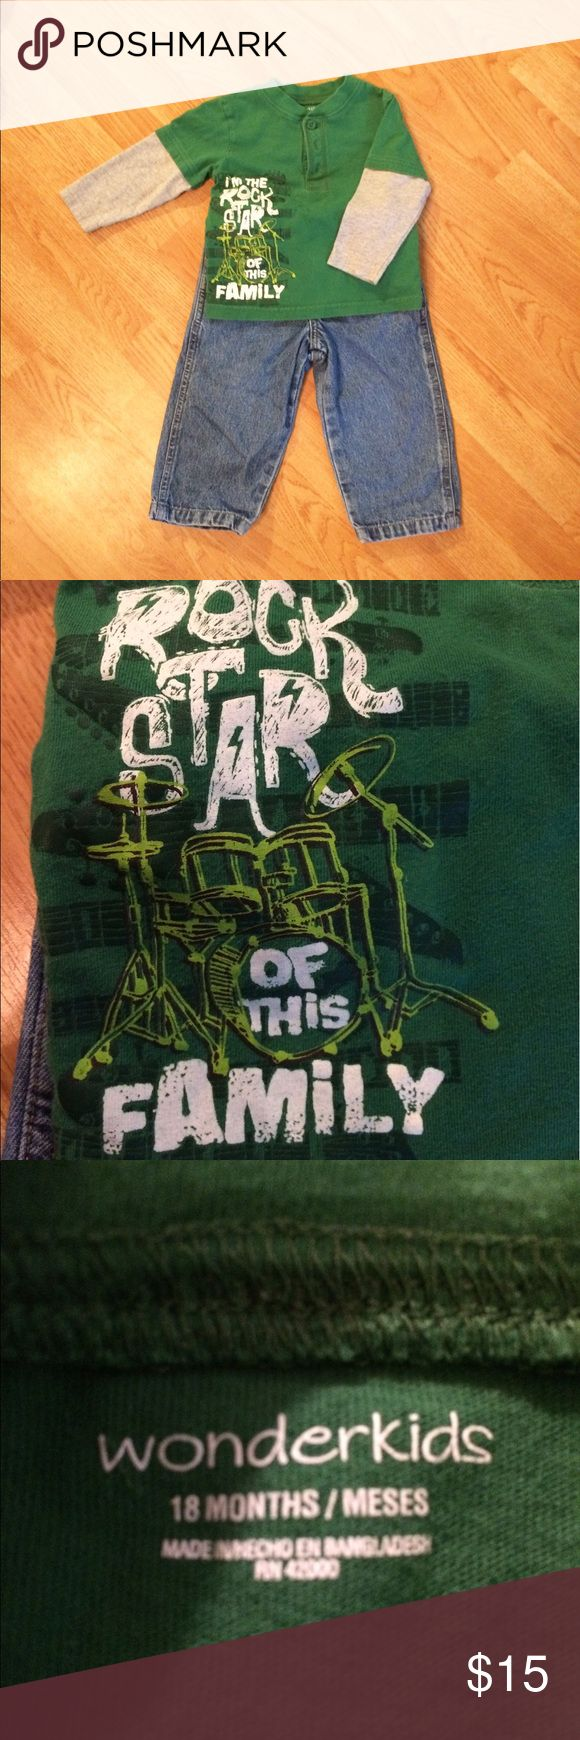 💟 Wonderkids Rock Star Outfit - 18 Months Wonderkids Rock Star Outfit - 18 Months  Green Rockstar Long Sleeve Shirt - Wonderkids - 18 Months  Jeans - Faded Glory - 18 Months   Great Condition!!   BUNDLE with my other listings for a DEAL!!! Wonderkids Shirts & Tops Tees - Long Sleeve